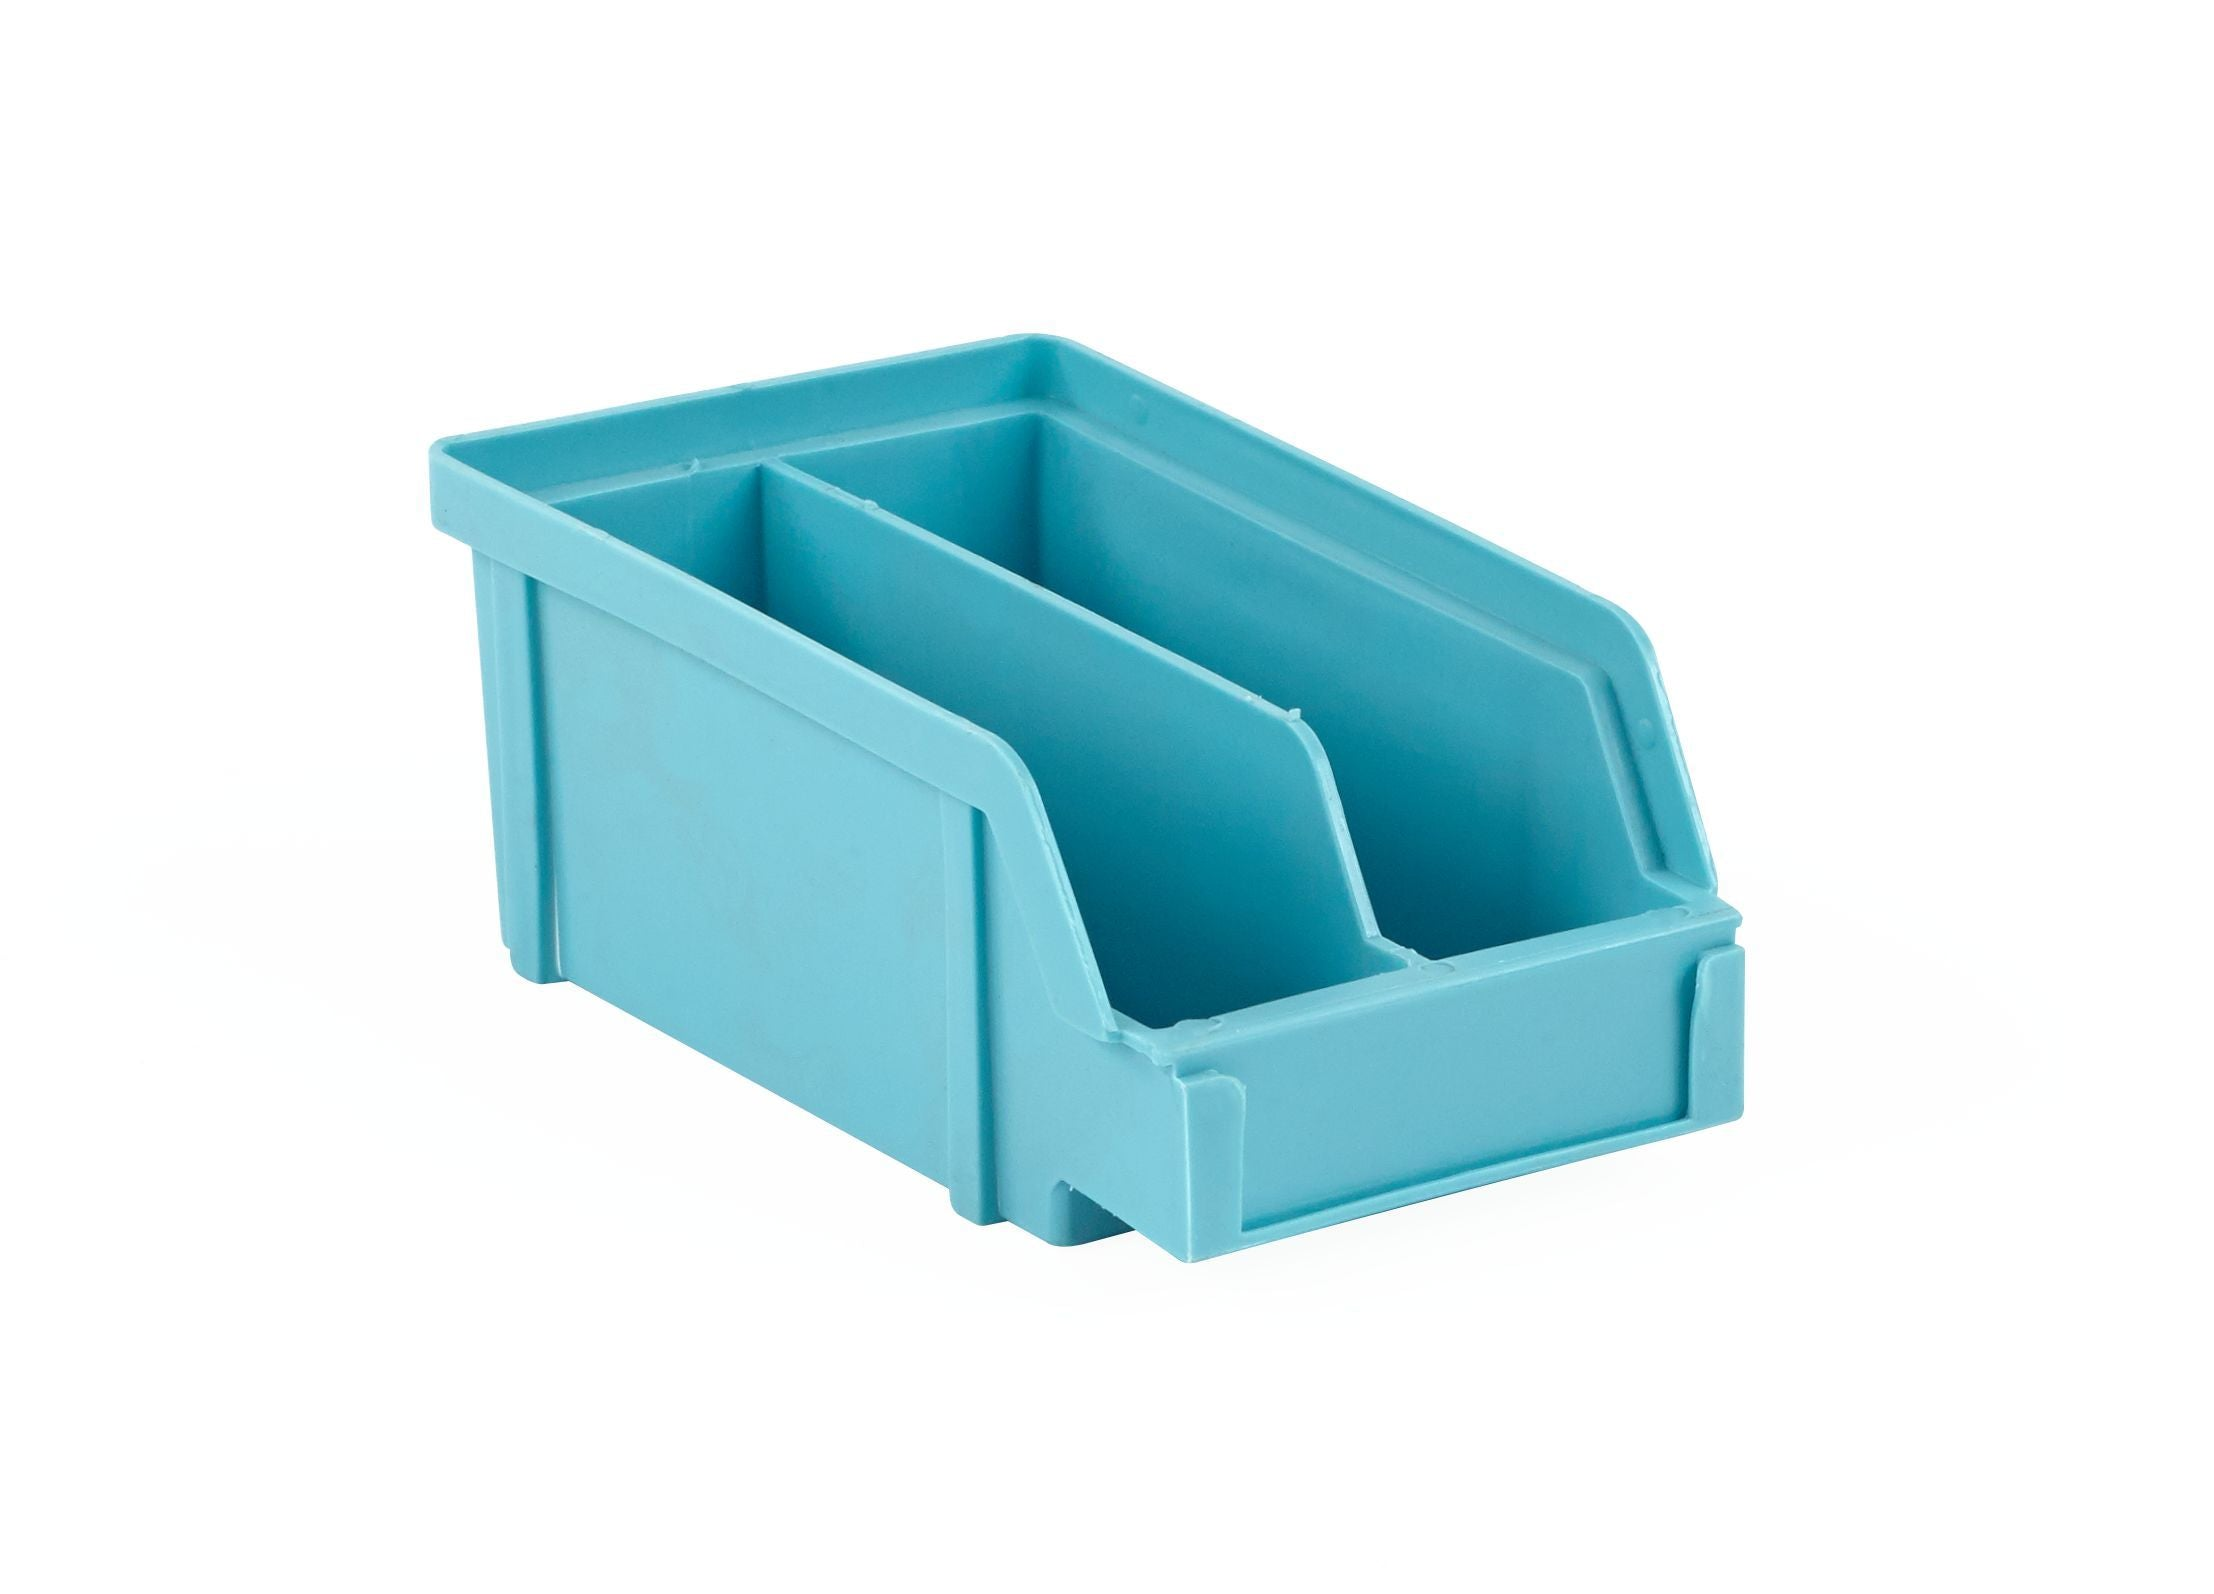 PB30-X | 10X6X5 PlastiBox Container with Molded-In Divider | Pack of 12